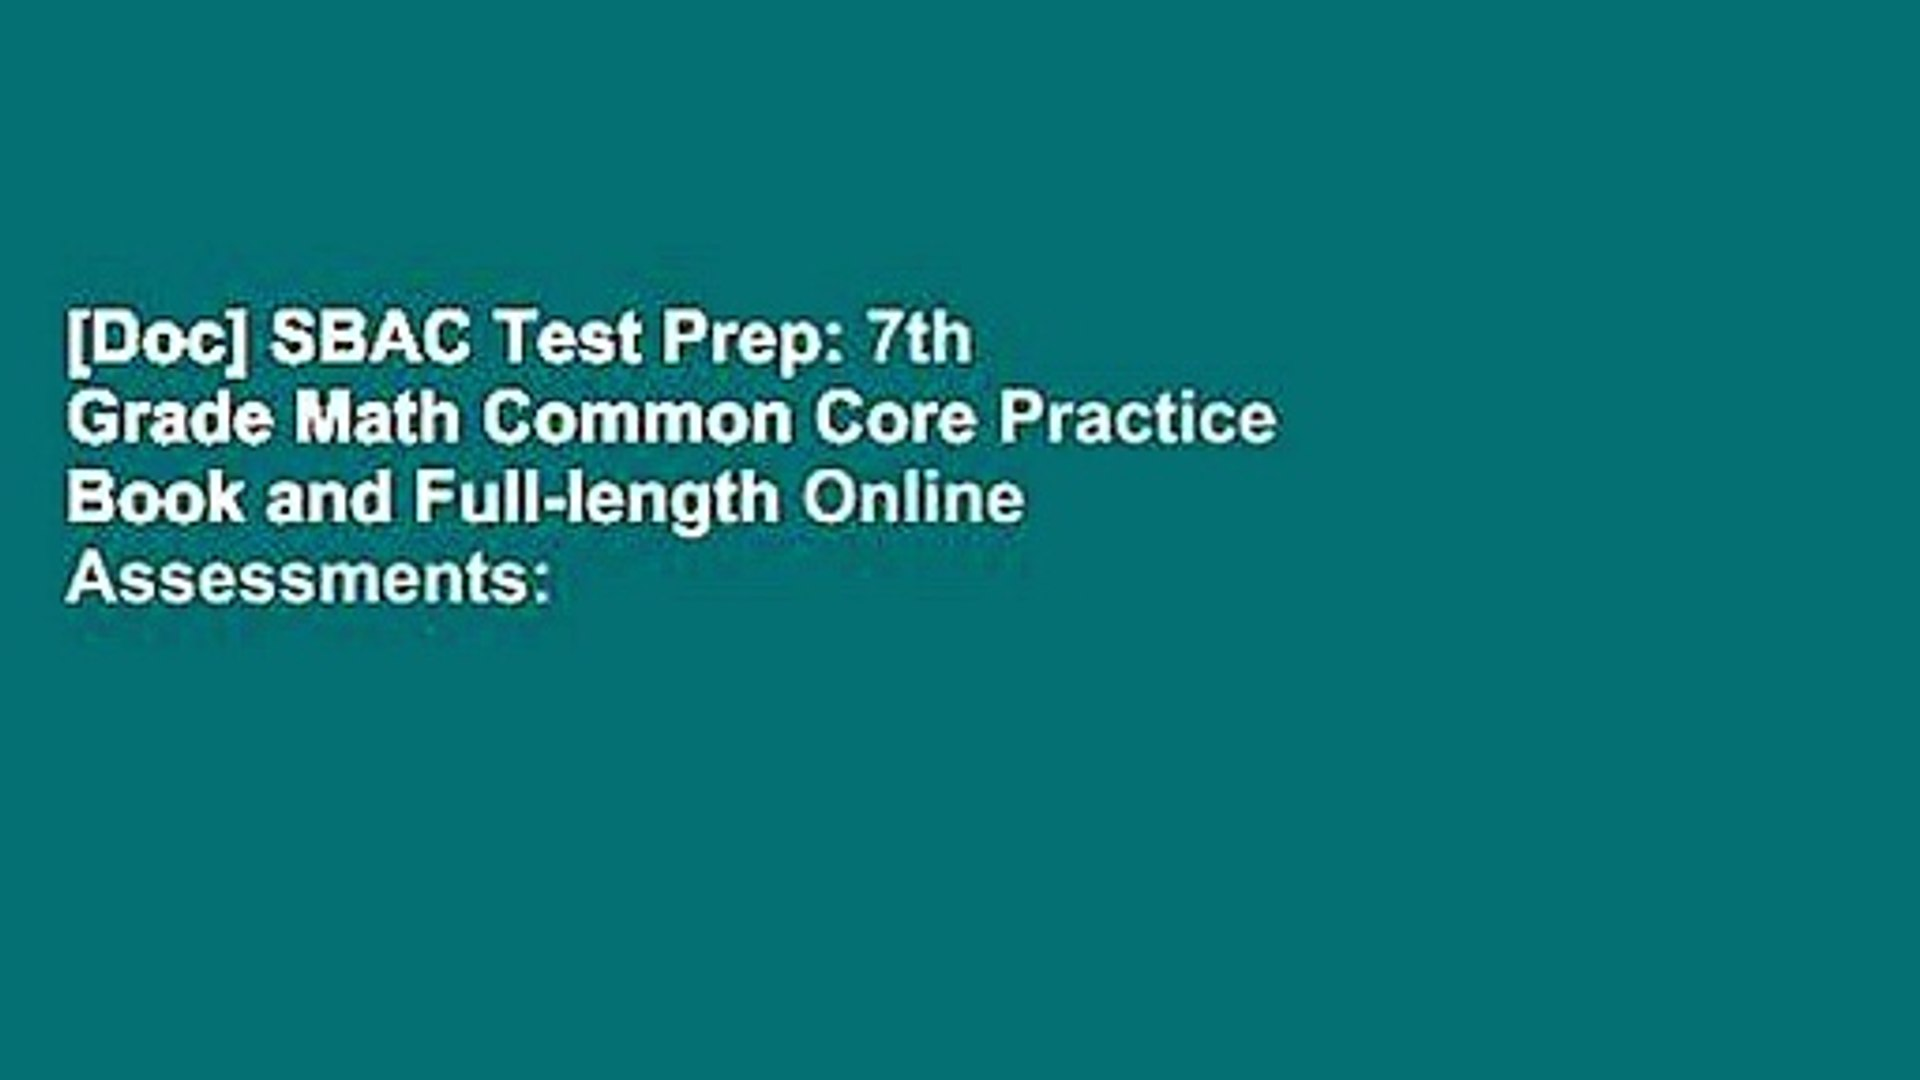 [Doc] SBAC Test Prep: 7th Grade Math Common Core Practice Book and  Full-length Online Assessments: